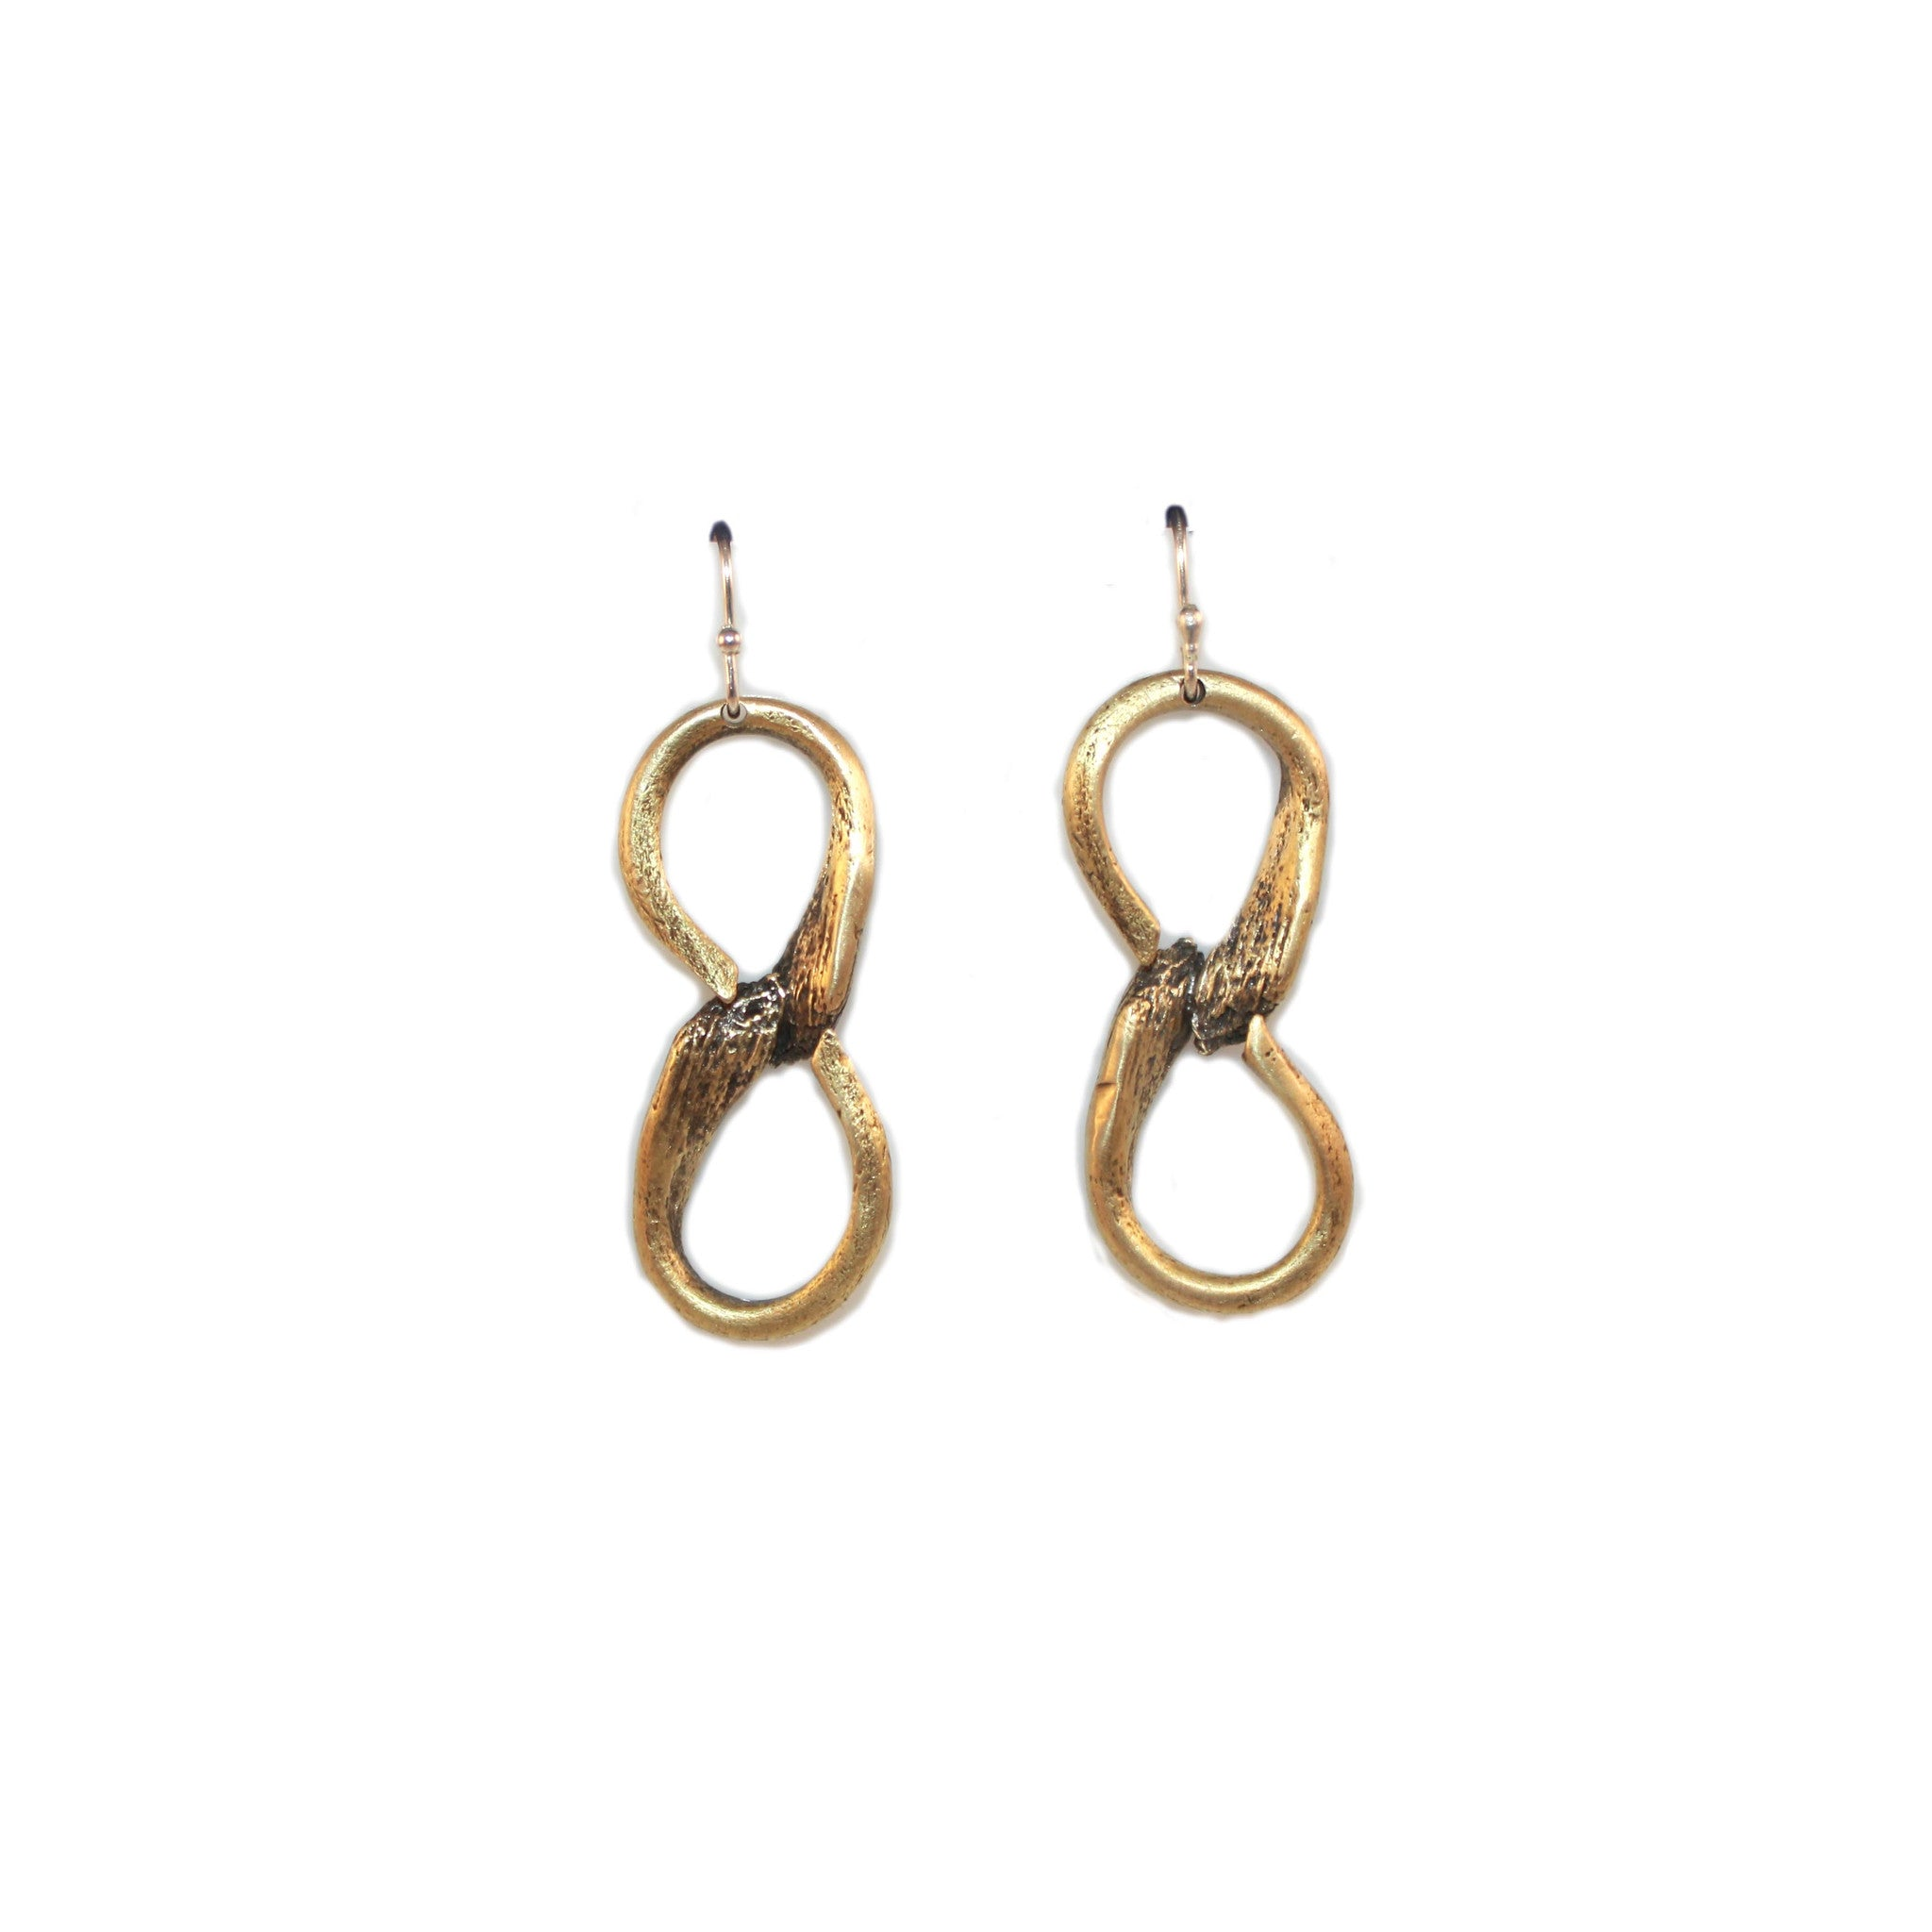 Lemniscate Earrings